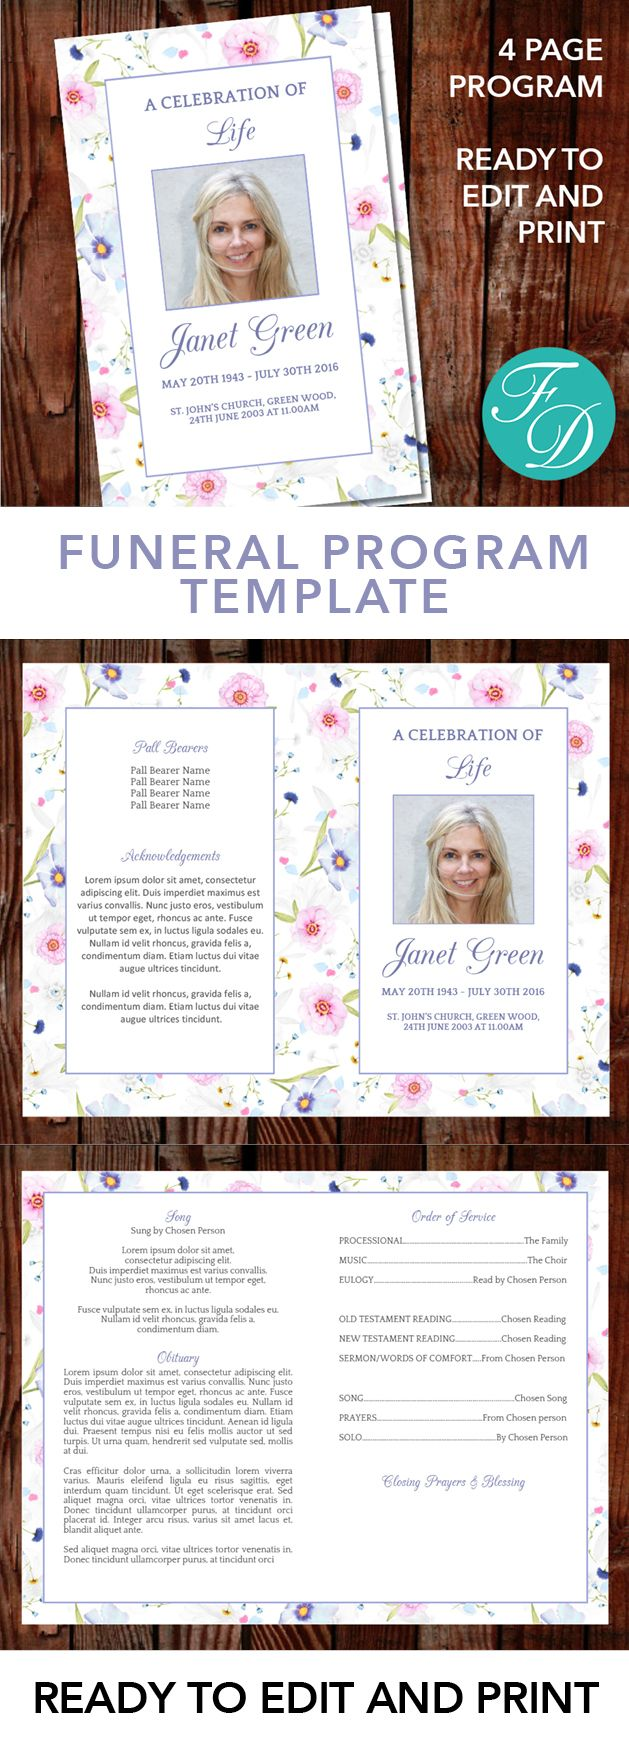 Floral Printable Funeral program ready to edit & print Simply purchase your funeral templates, download, edit with Microsoft Word and print. #obituarytemplate #memorialprogram #funeralprograms #funeraltemplate #printableprogram #celebrationoflife